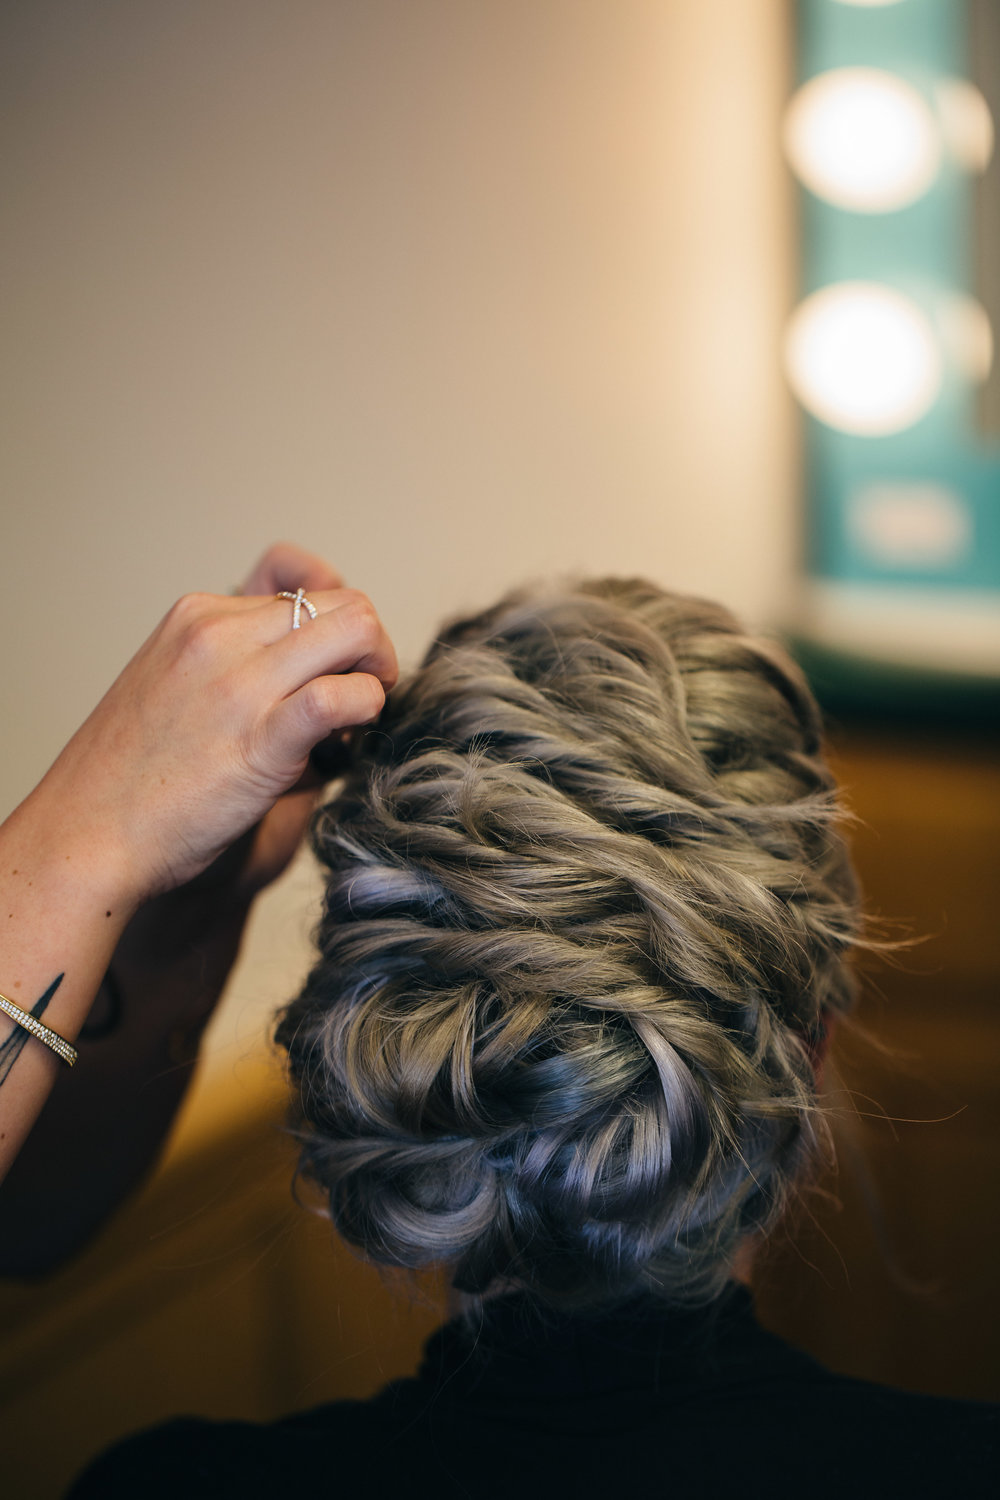 Wedding hair from Serenity Salon & Spa in Bowling Green, Ohio.